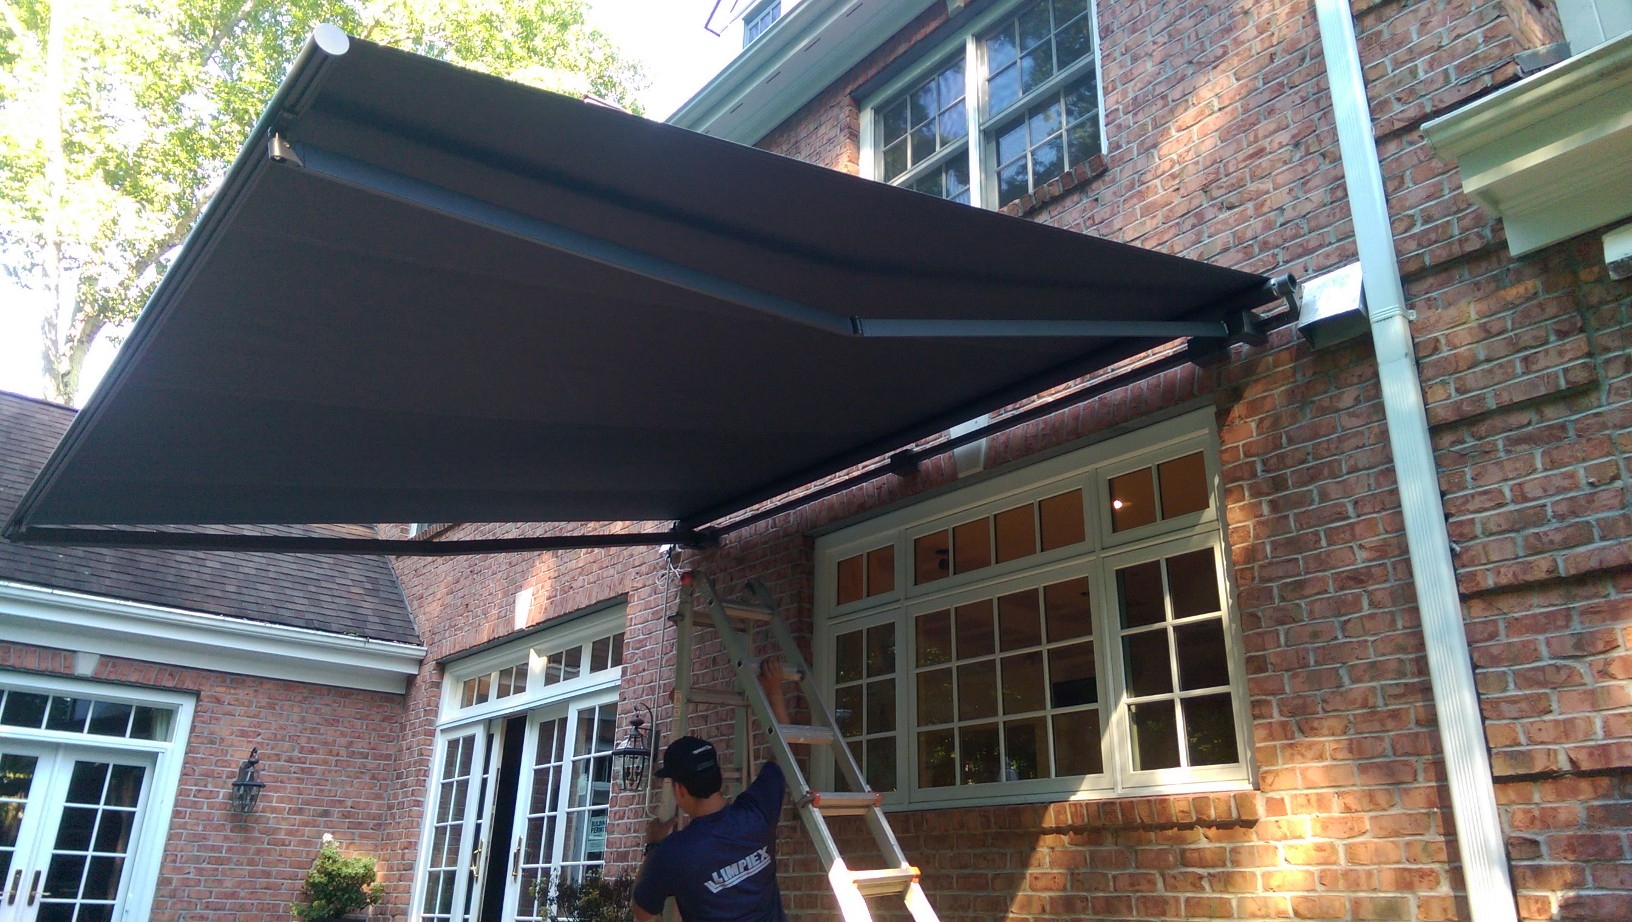 ... New Retractable Awning Installed By Dean And The Rest Of The New Haven  Awning Crew! Now These Lucky Customers Can Keep Their Company Cool And Dry  While ...